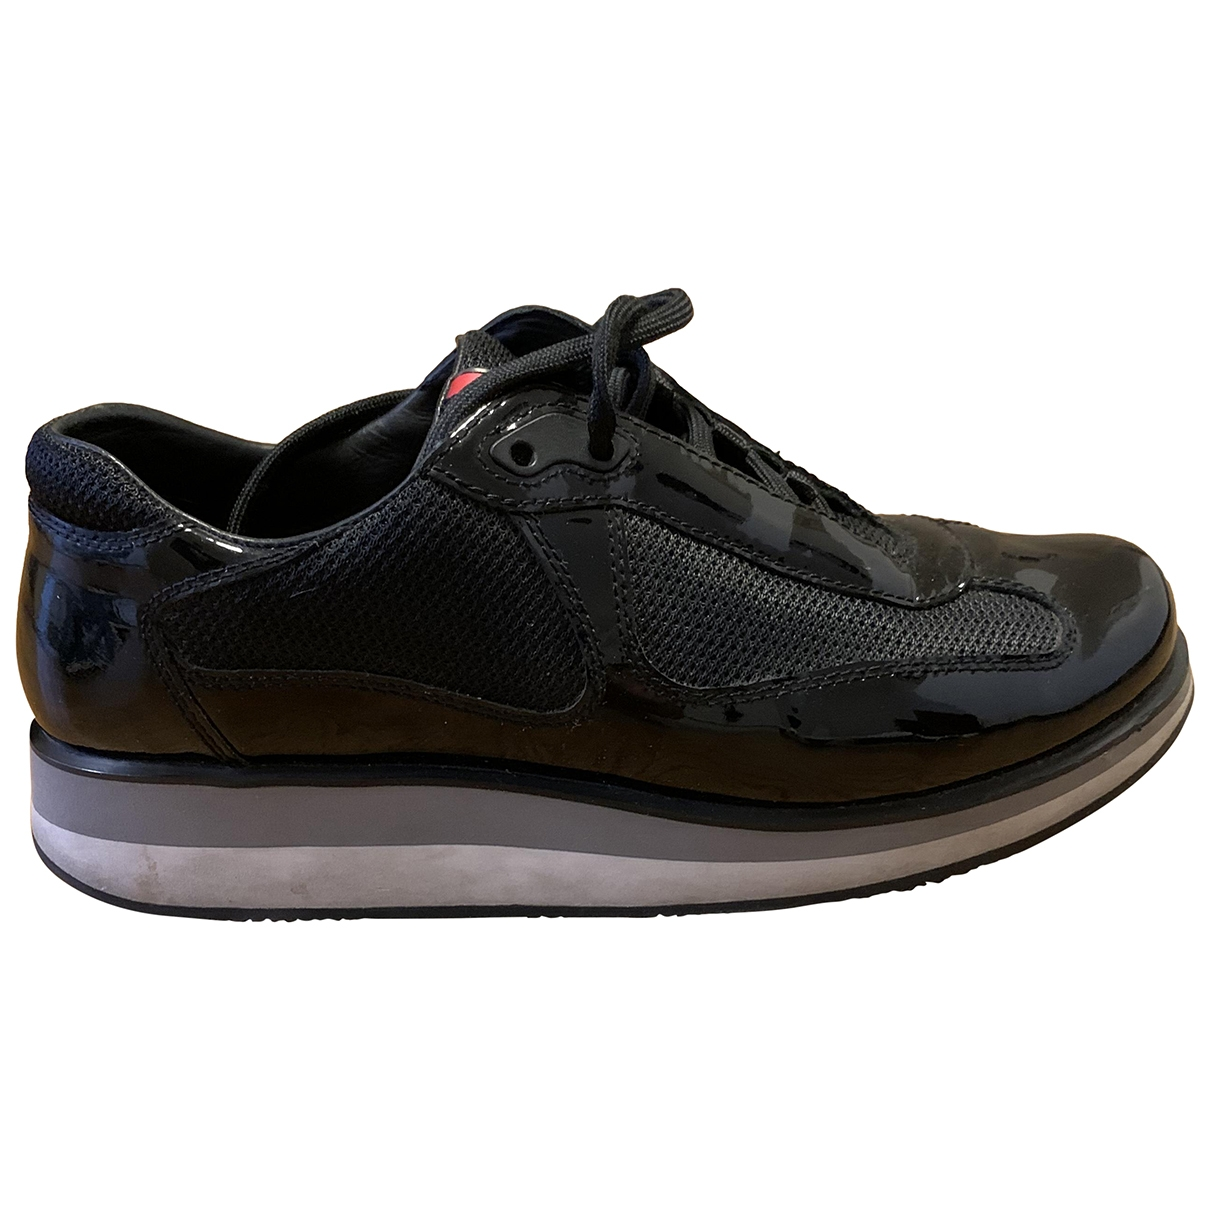 Prada \N Black Patent leather Trainers for Women 39.5 EU